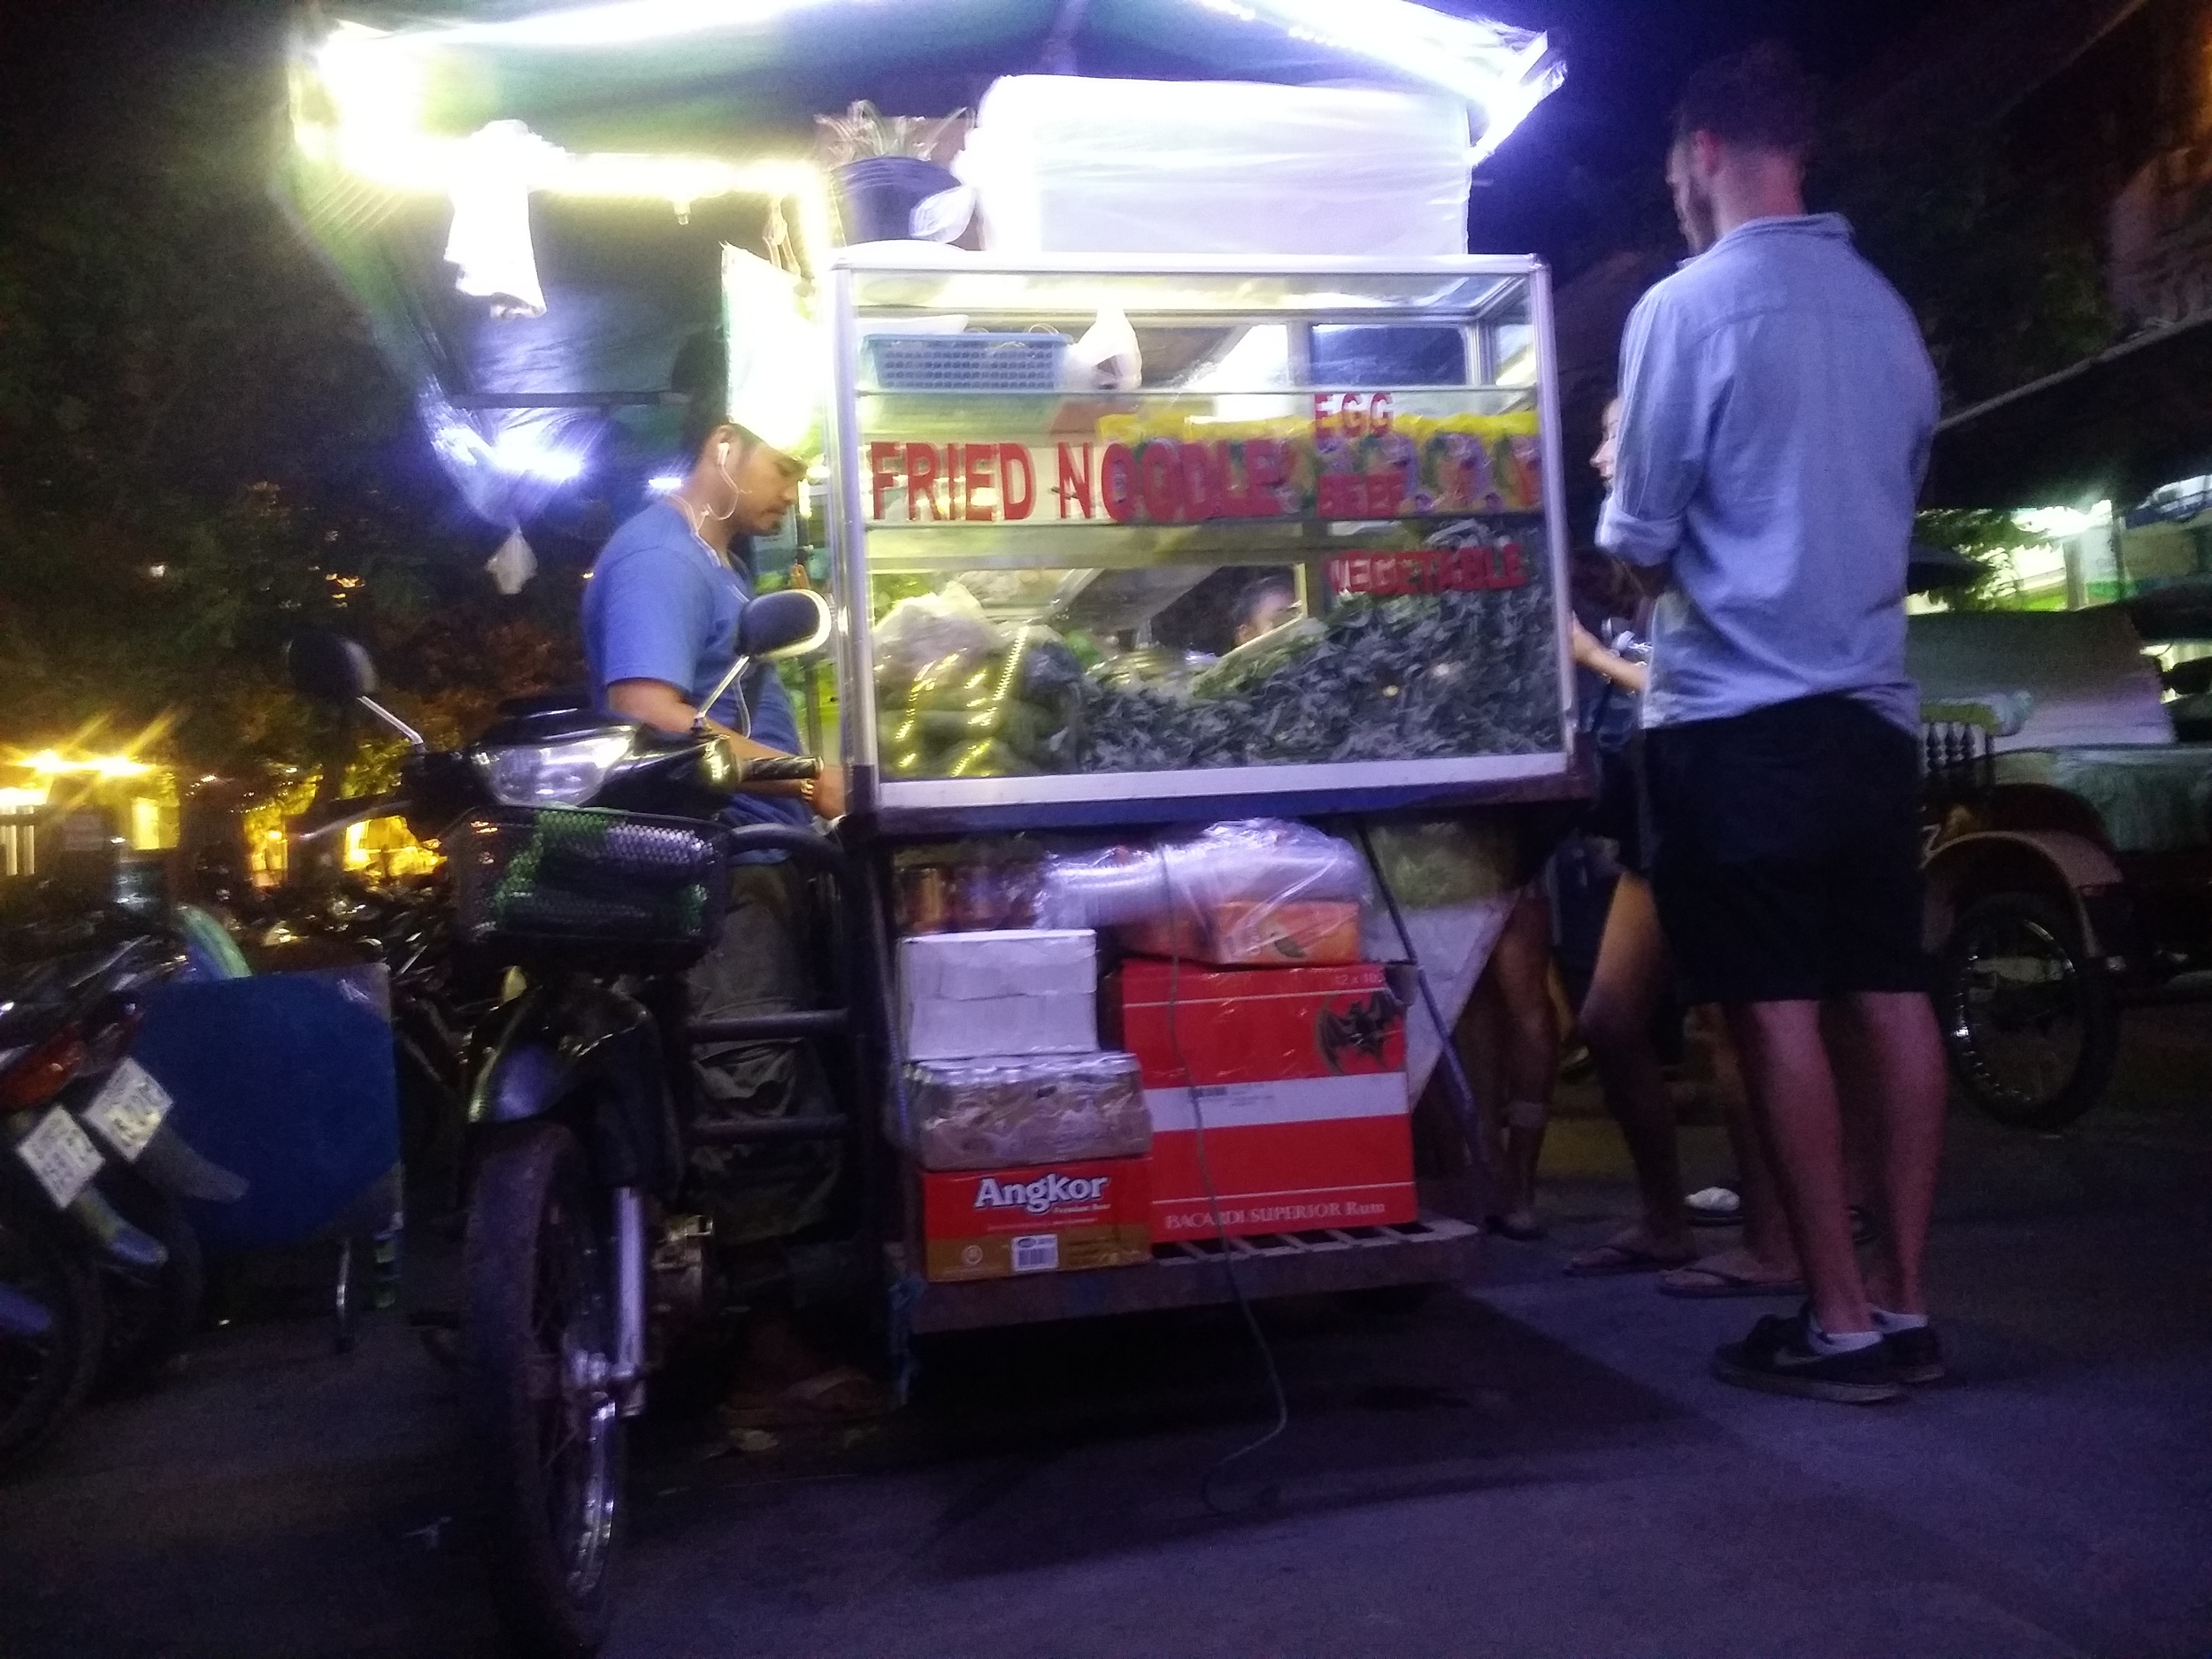 Common sight of food carts that are all across Cambodia and Southeast Asia